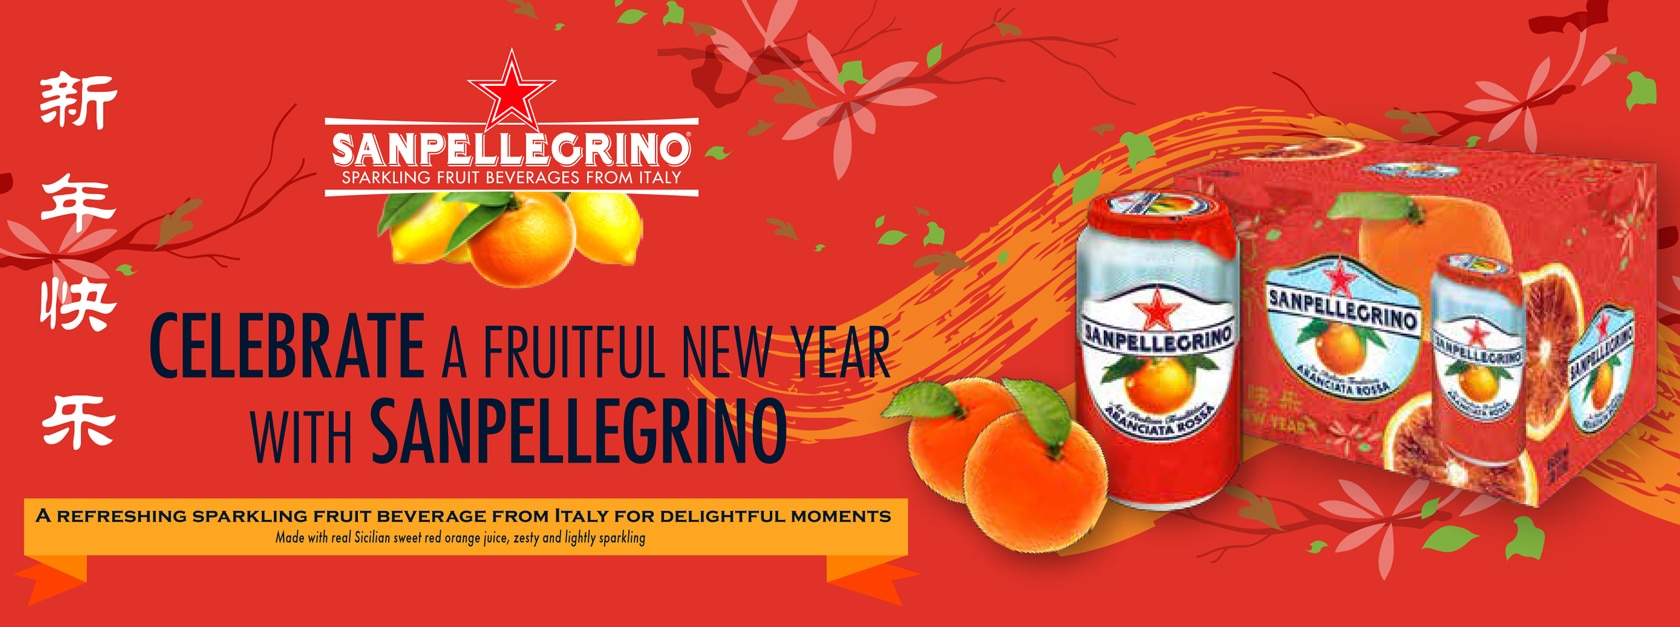 Sanpellegrino Scratch Card Promotion with Da Paolo